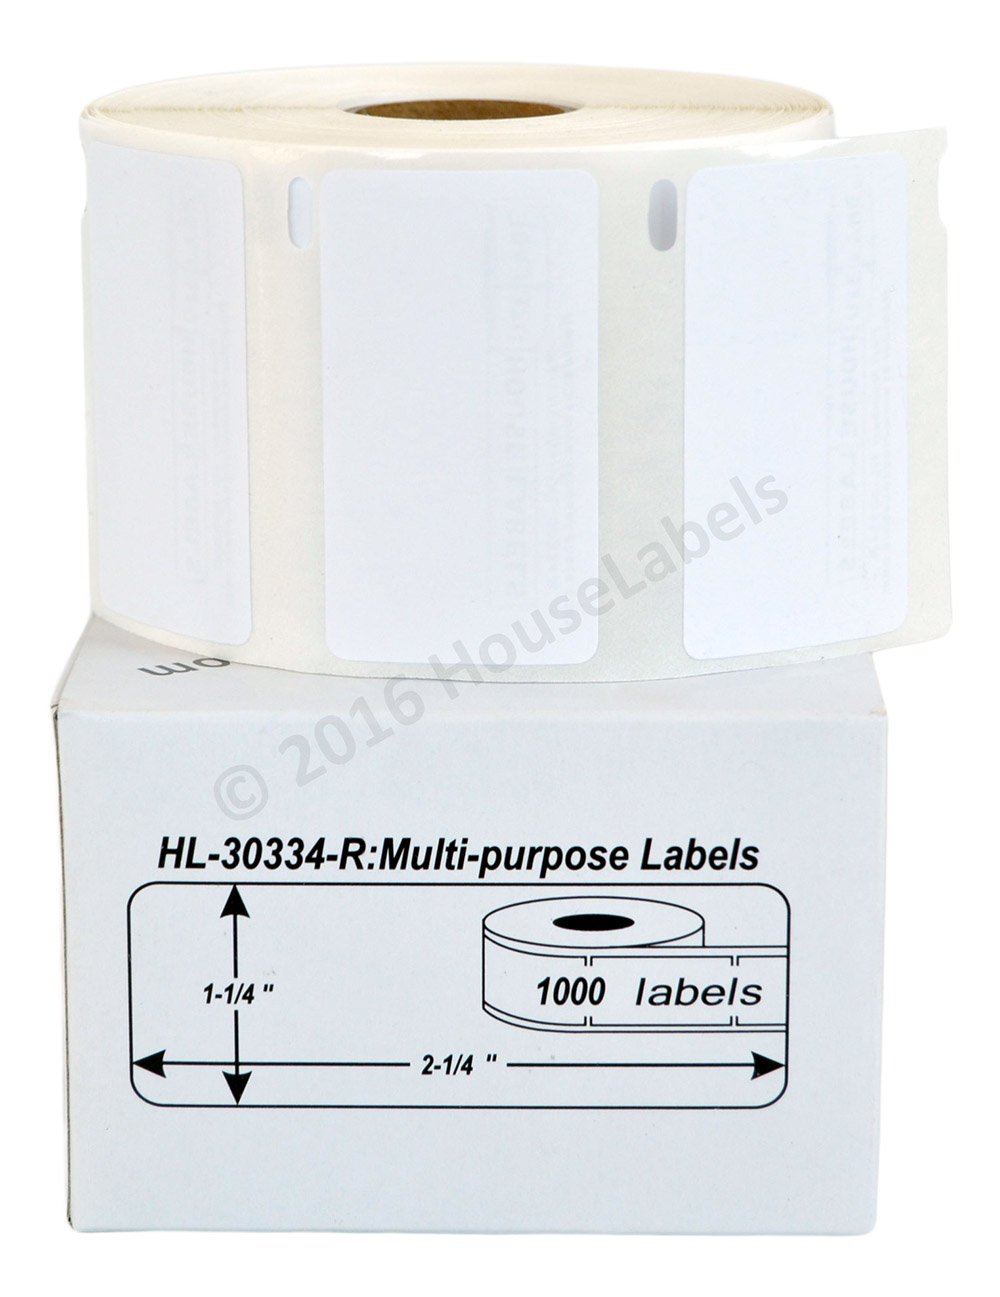 6 Rolls; 1,000 Labels per Roll of DYMO-Compatible 30334-R REMOVABLE Multipurpose Labels (2-1/4'' x 1-1/4'') - BPA Free! by HouseLabels (Image #1)